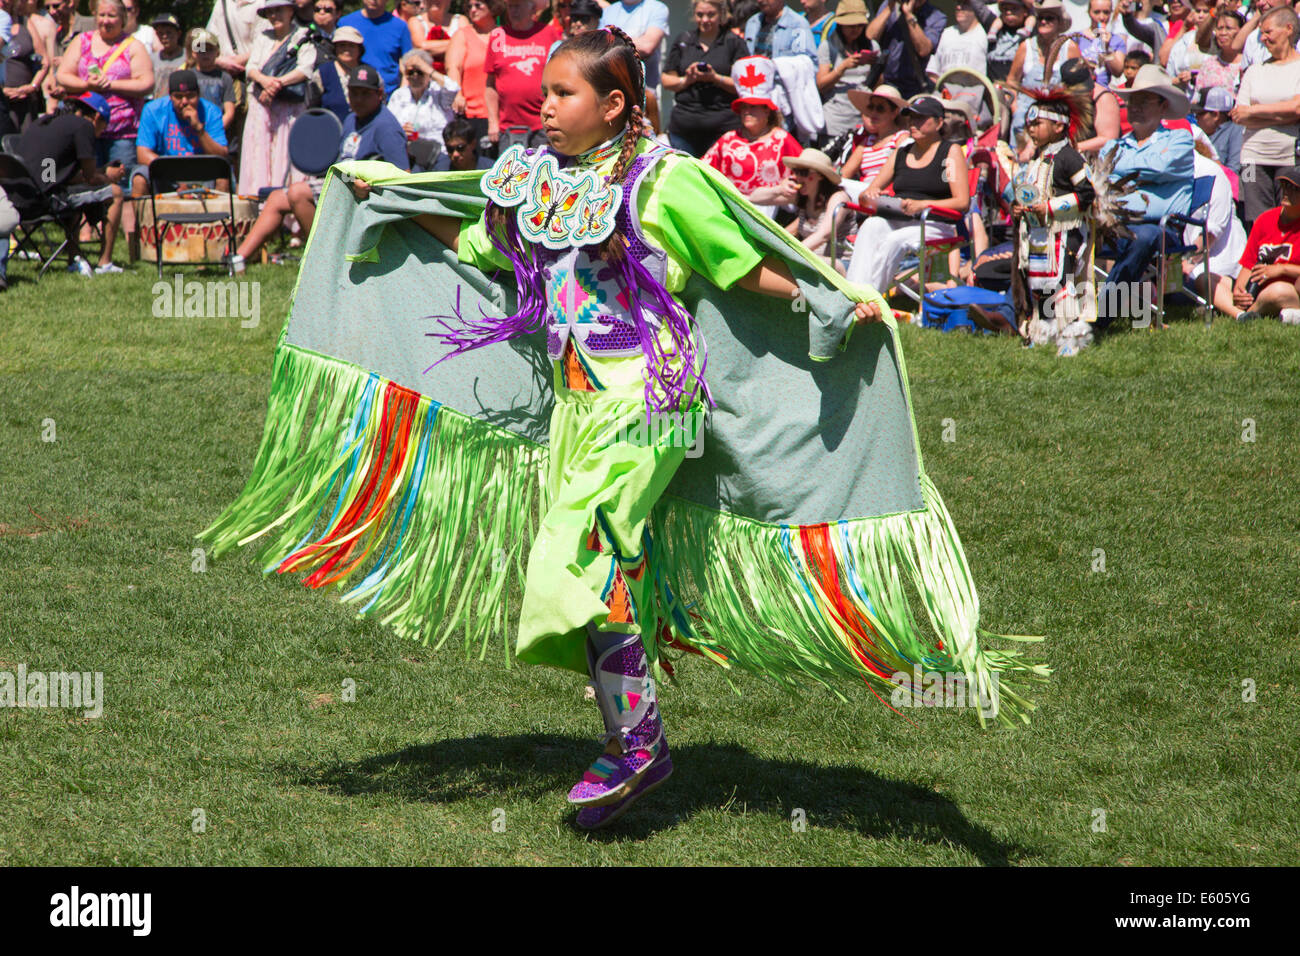 Girl dancing at First Nations powwow on Canada Day - Stock Image